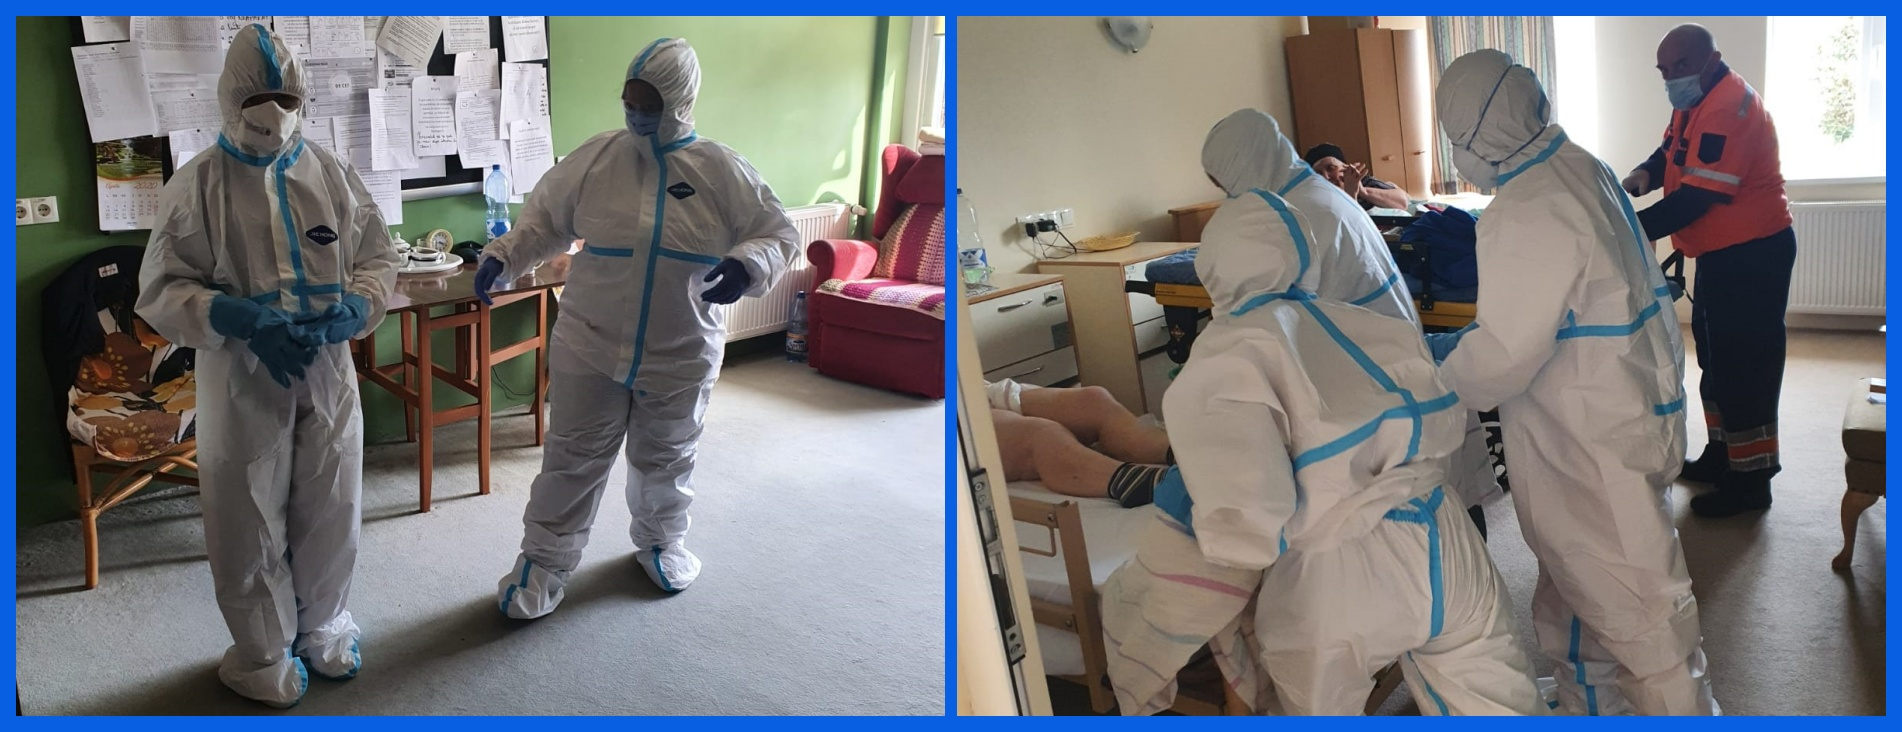 Staff at JFL in PPE